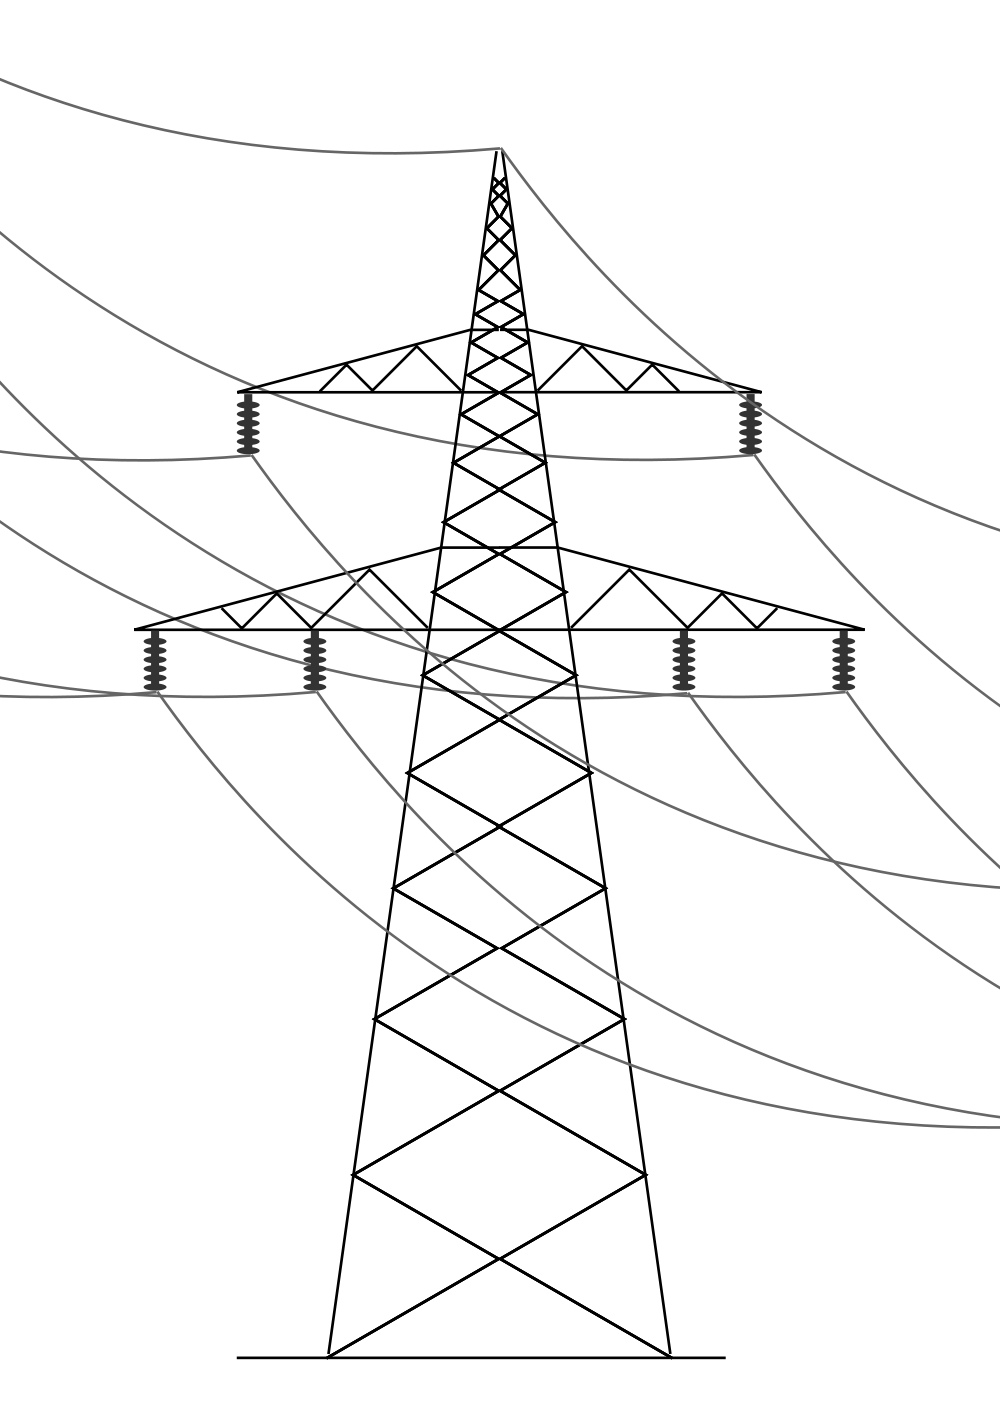 Drawn power line electric tower Wikimedia Commons Open line svg